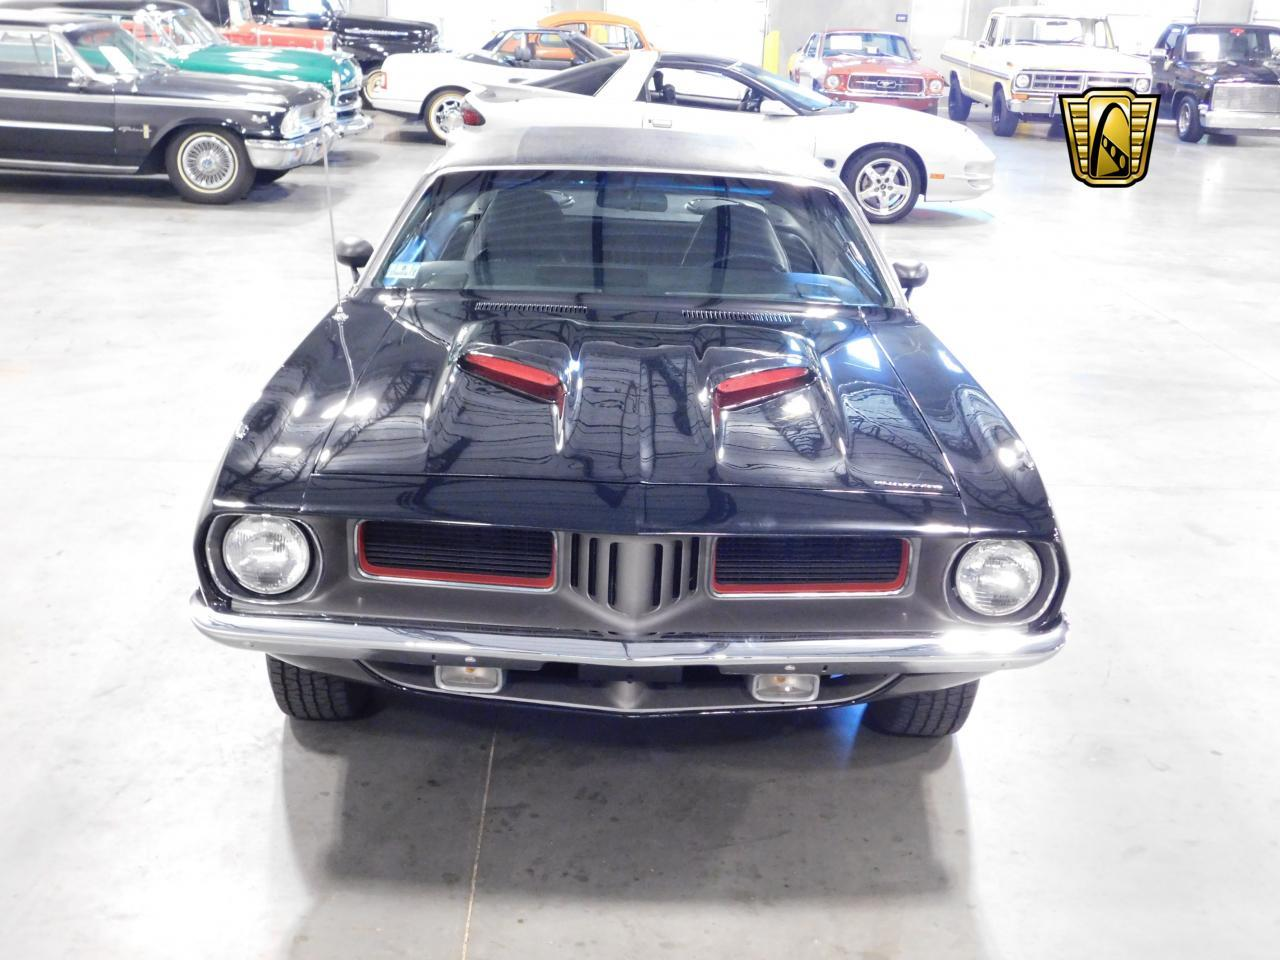 Large Picture of 1972 Barracuda located in Alpharetta Georgia - $44,995.00 - MZG1